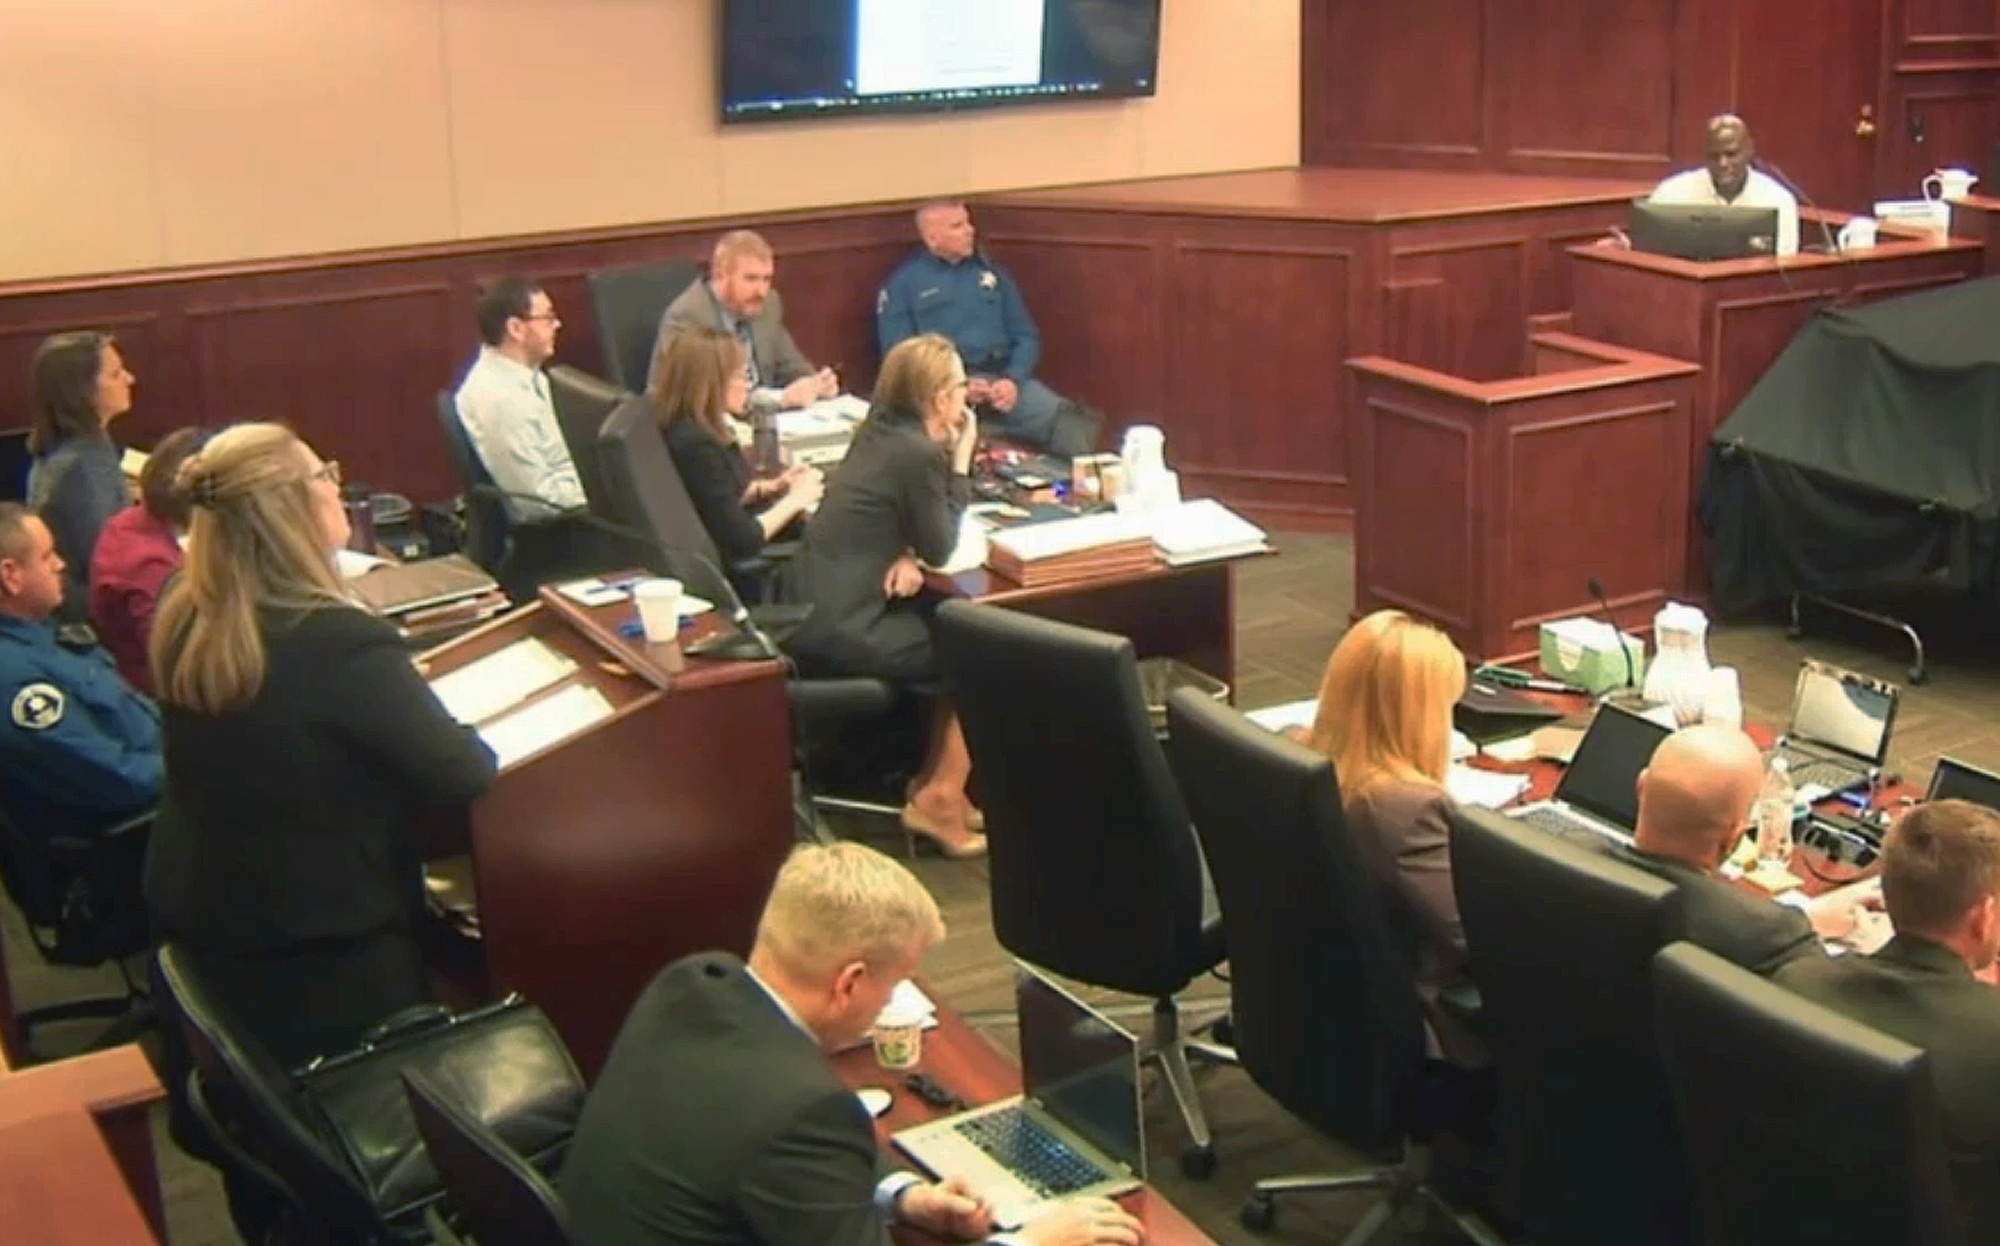 Theater shooting trial resumes; testimony focuses on phone